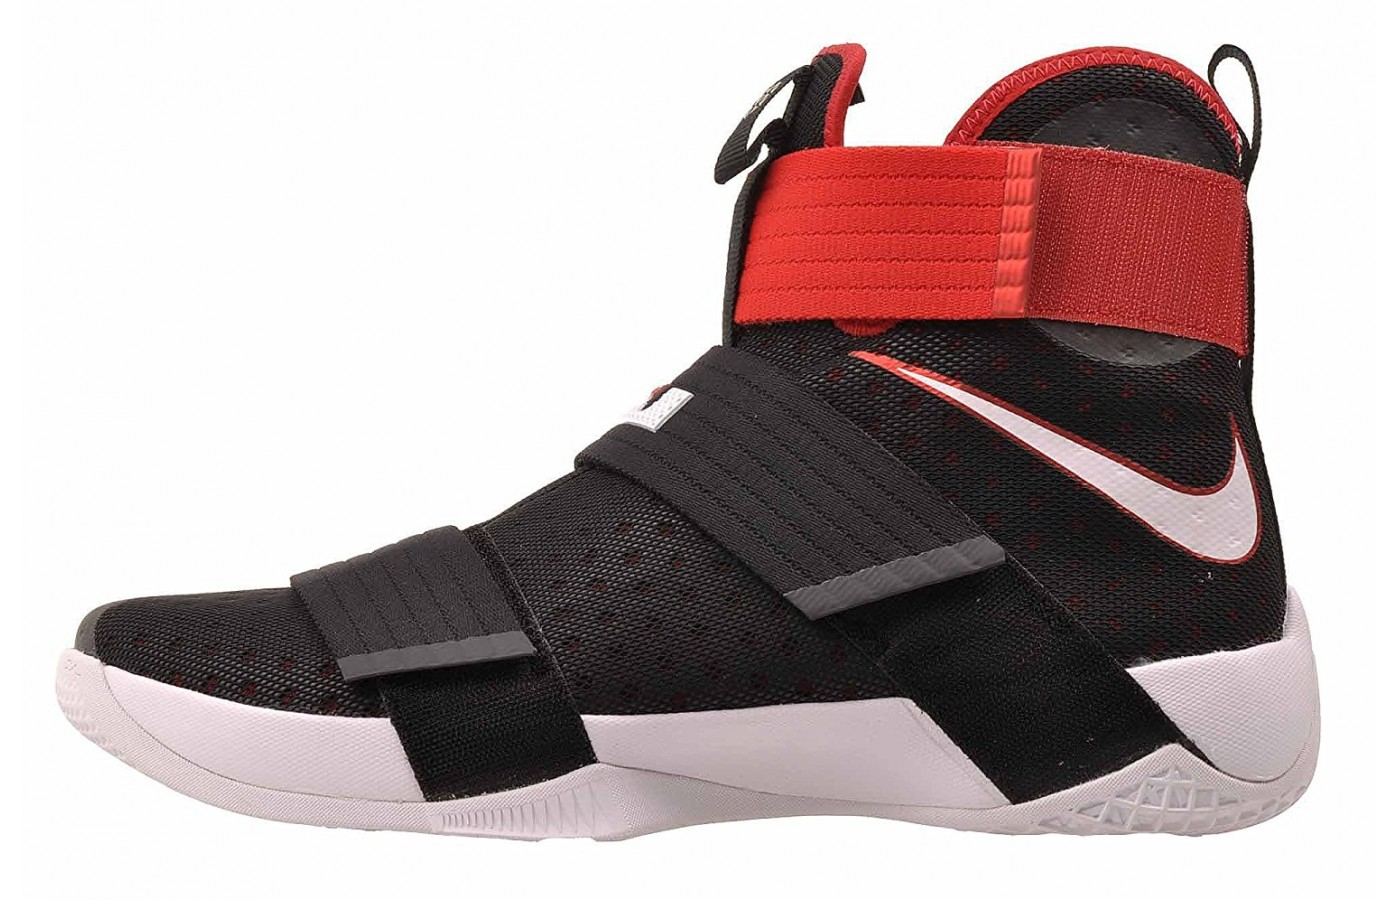 8caf1bd6b5707 Nike Zoom Lebron Soldier 10 Tested - WalkJogRun